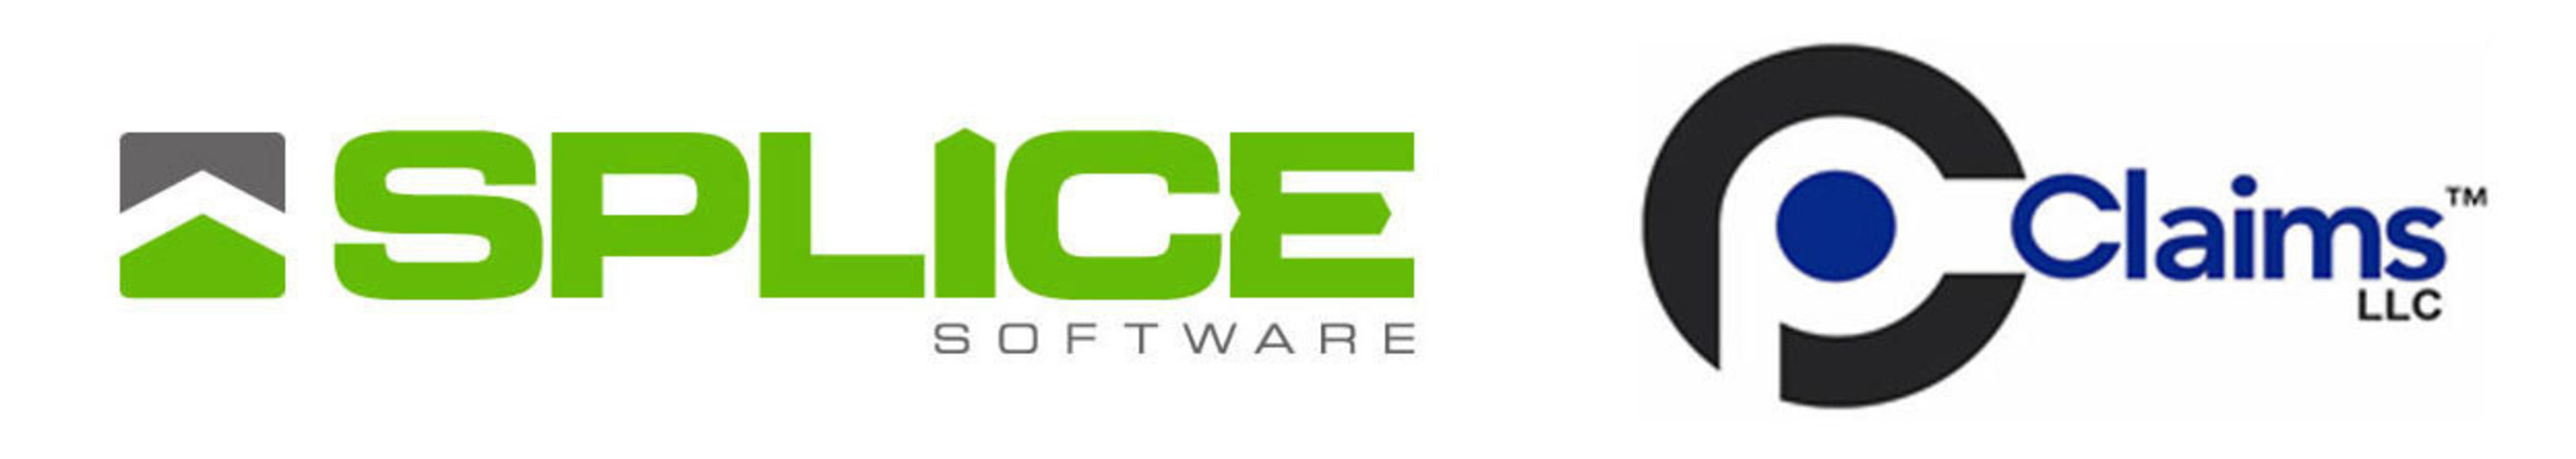 SPLICE Software Partners With Clear Point Claims